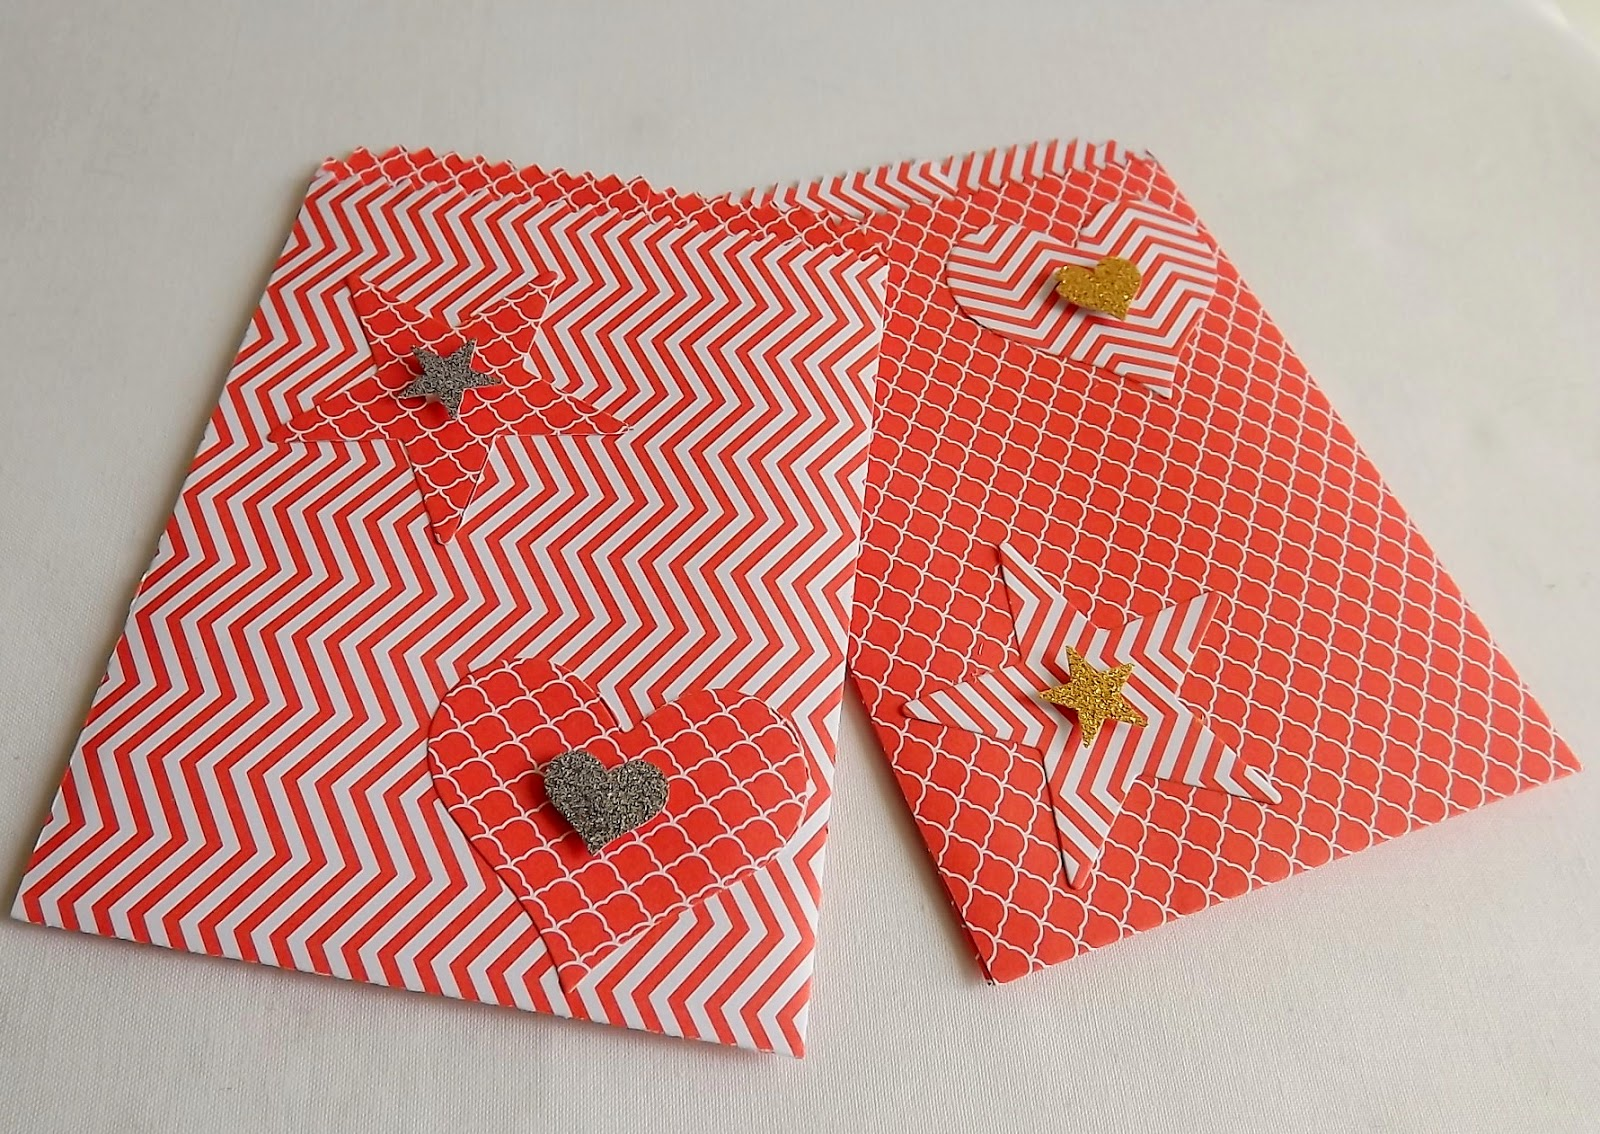 Stampin Up! mini treat bags, Calypso coral dsp